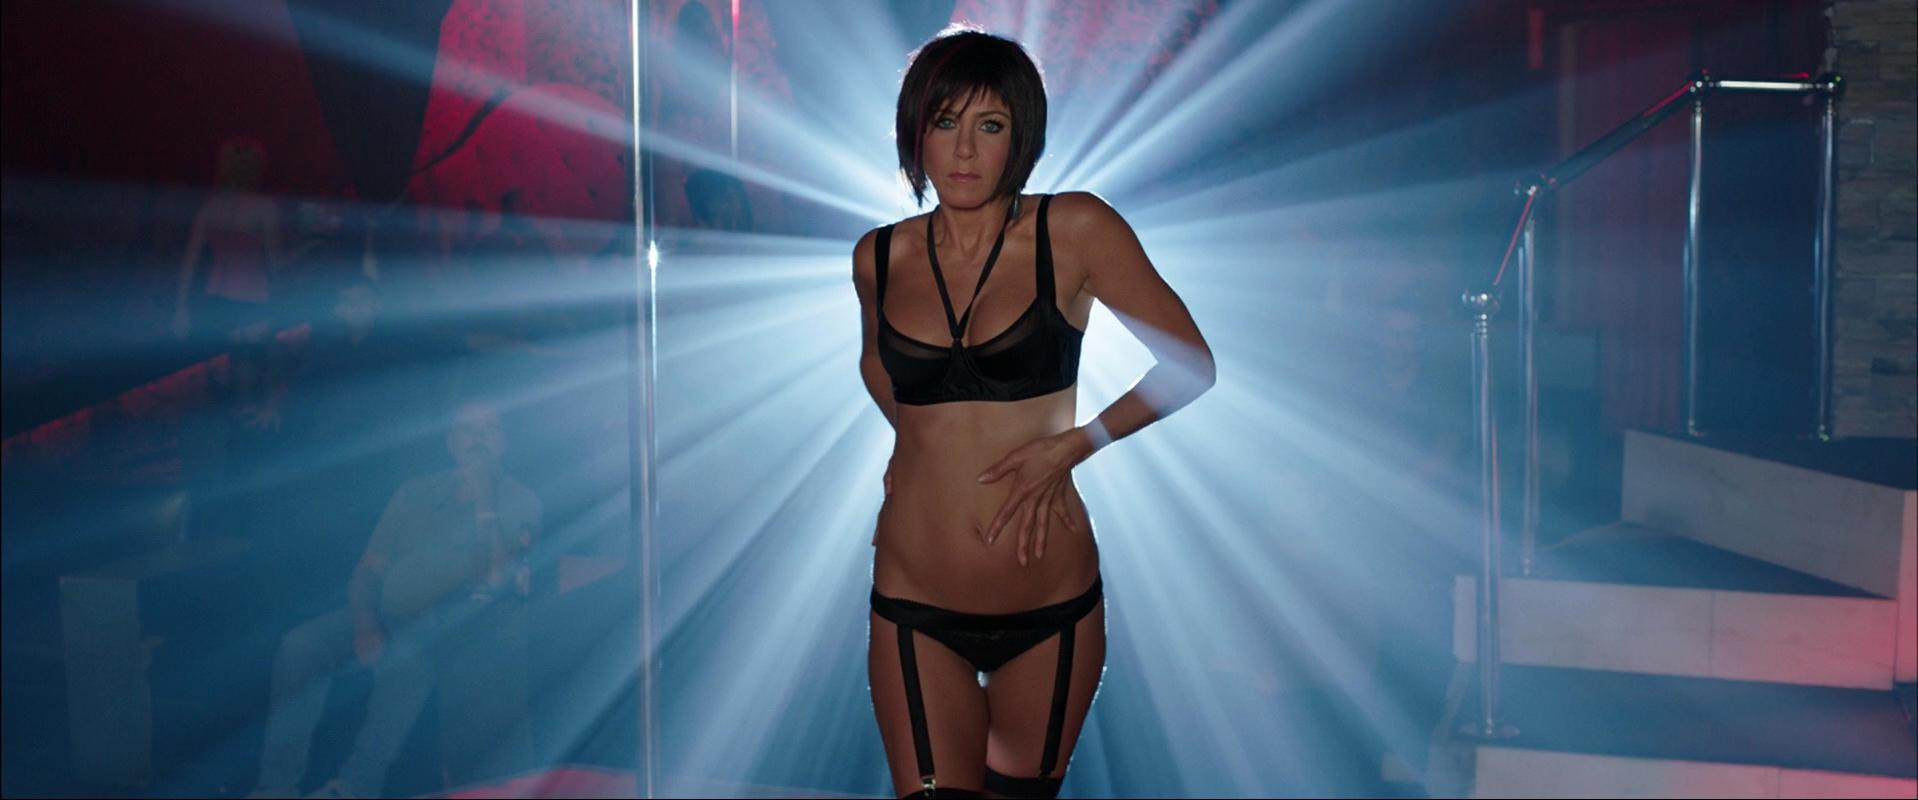 Jennifer Aniston sexy - We're the Millers (2013)